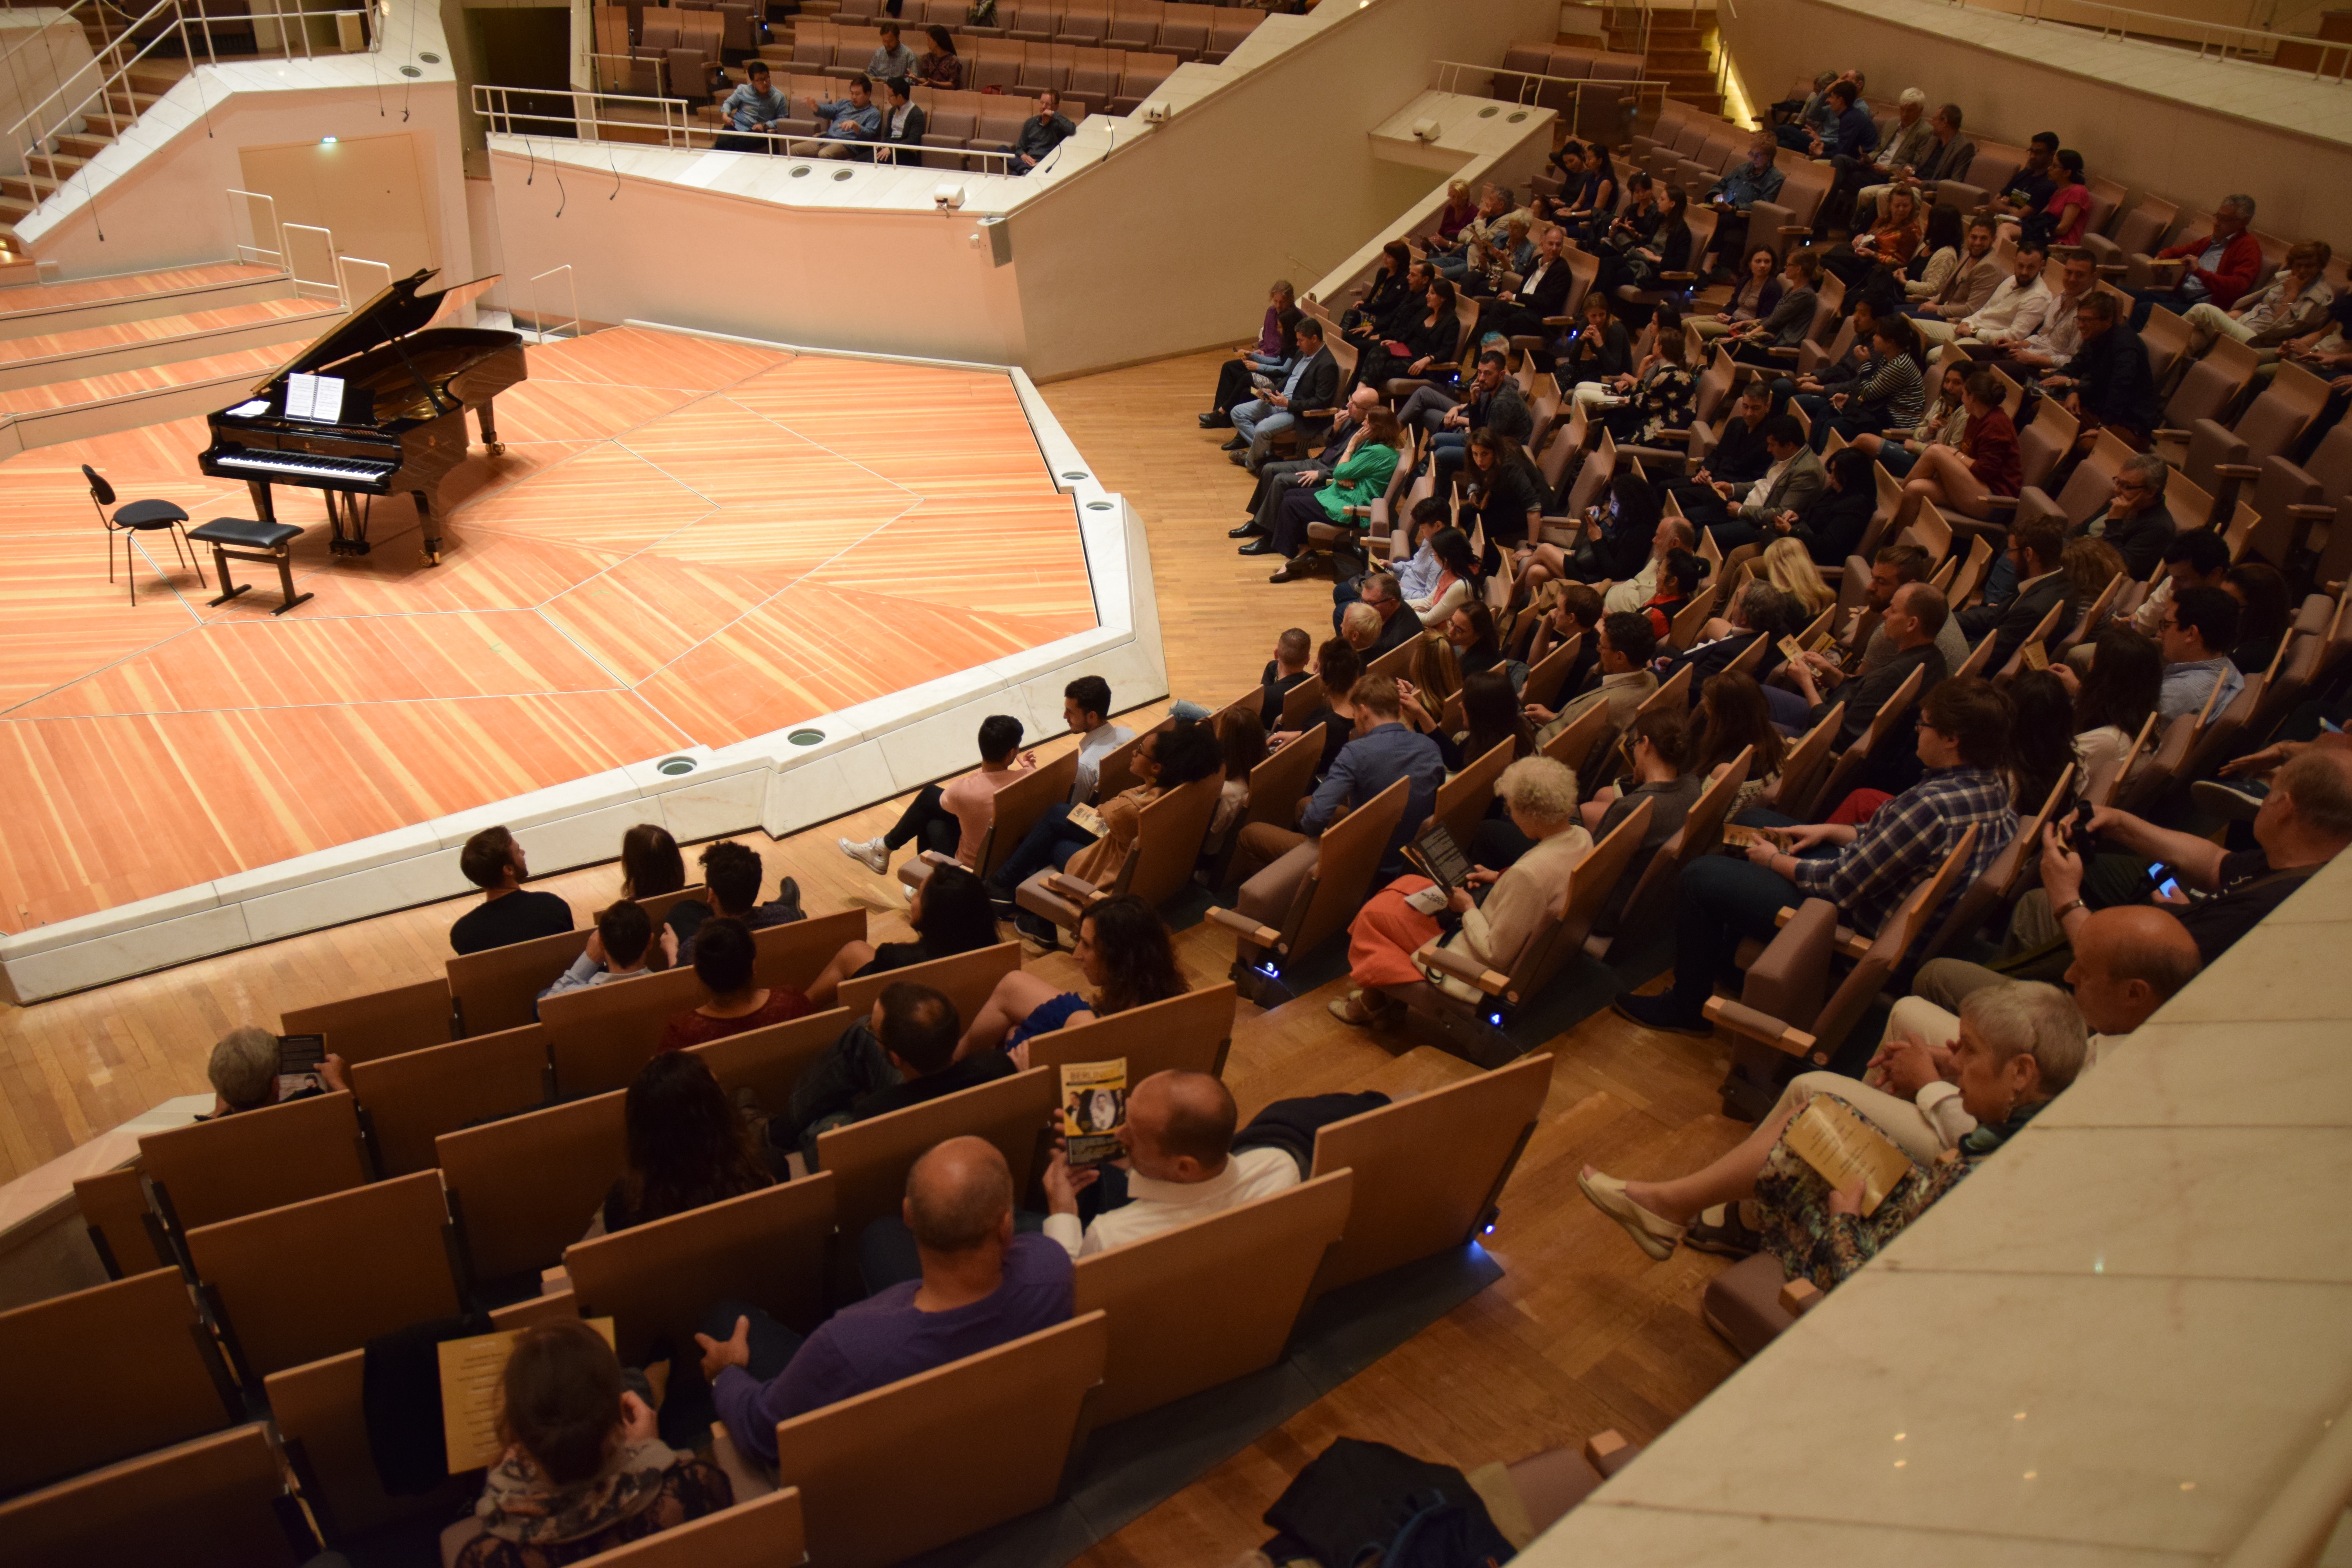 berliner music competition 32